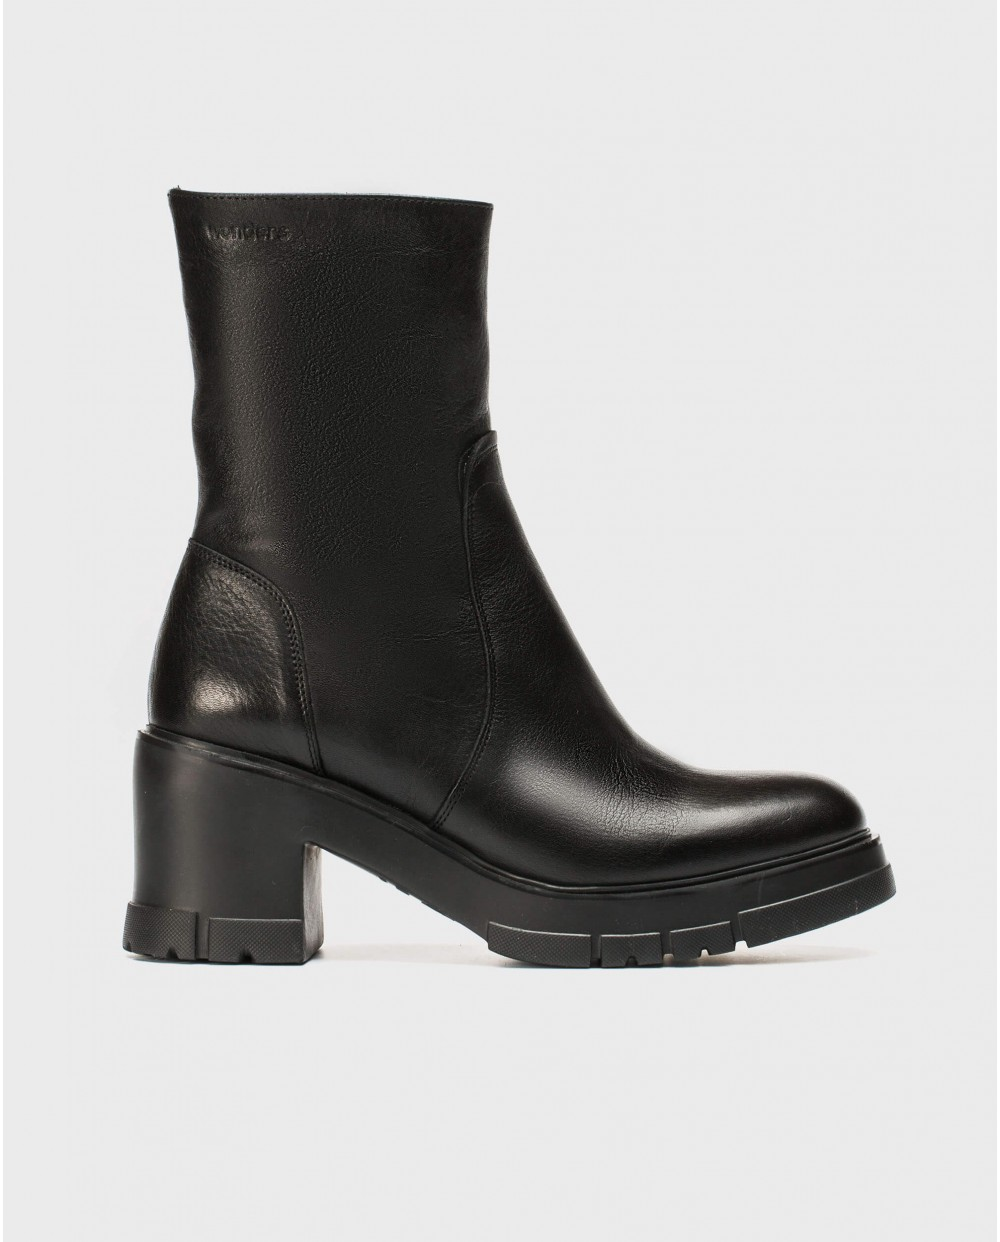 Wonders-Ankle Boots-Combat leather ankle boot